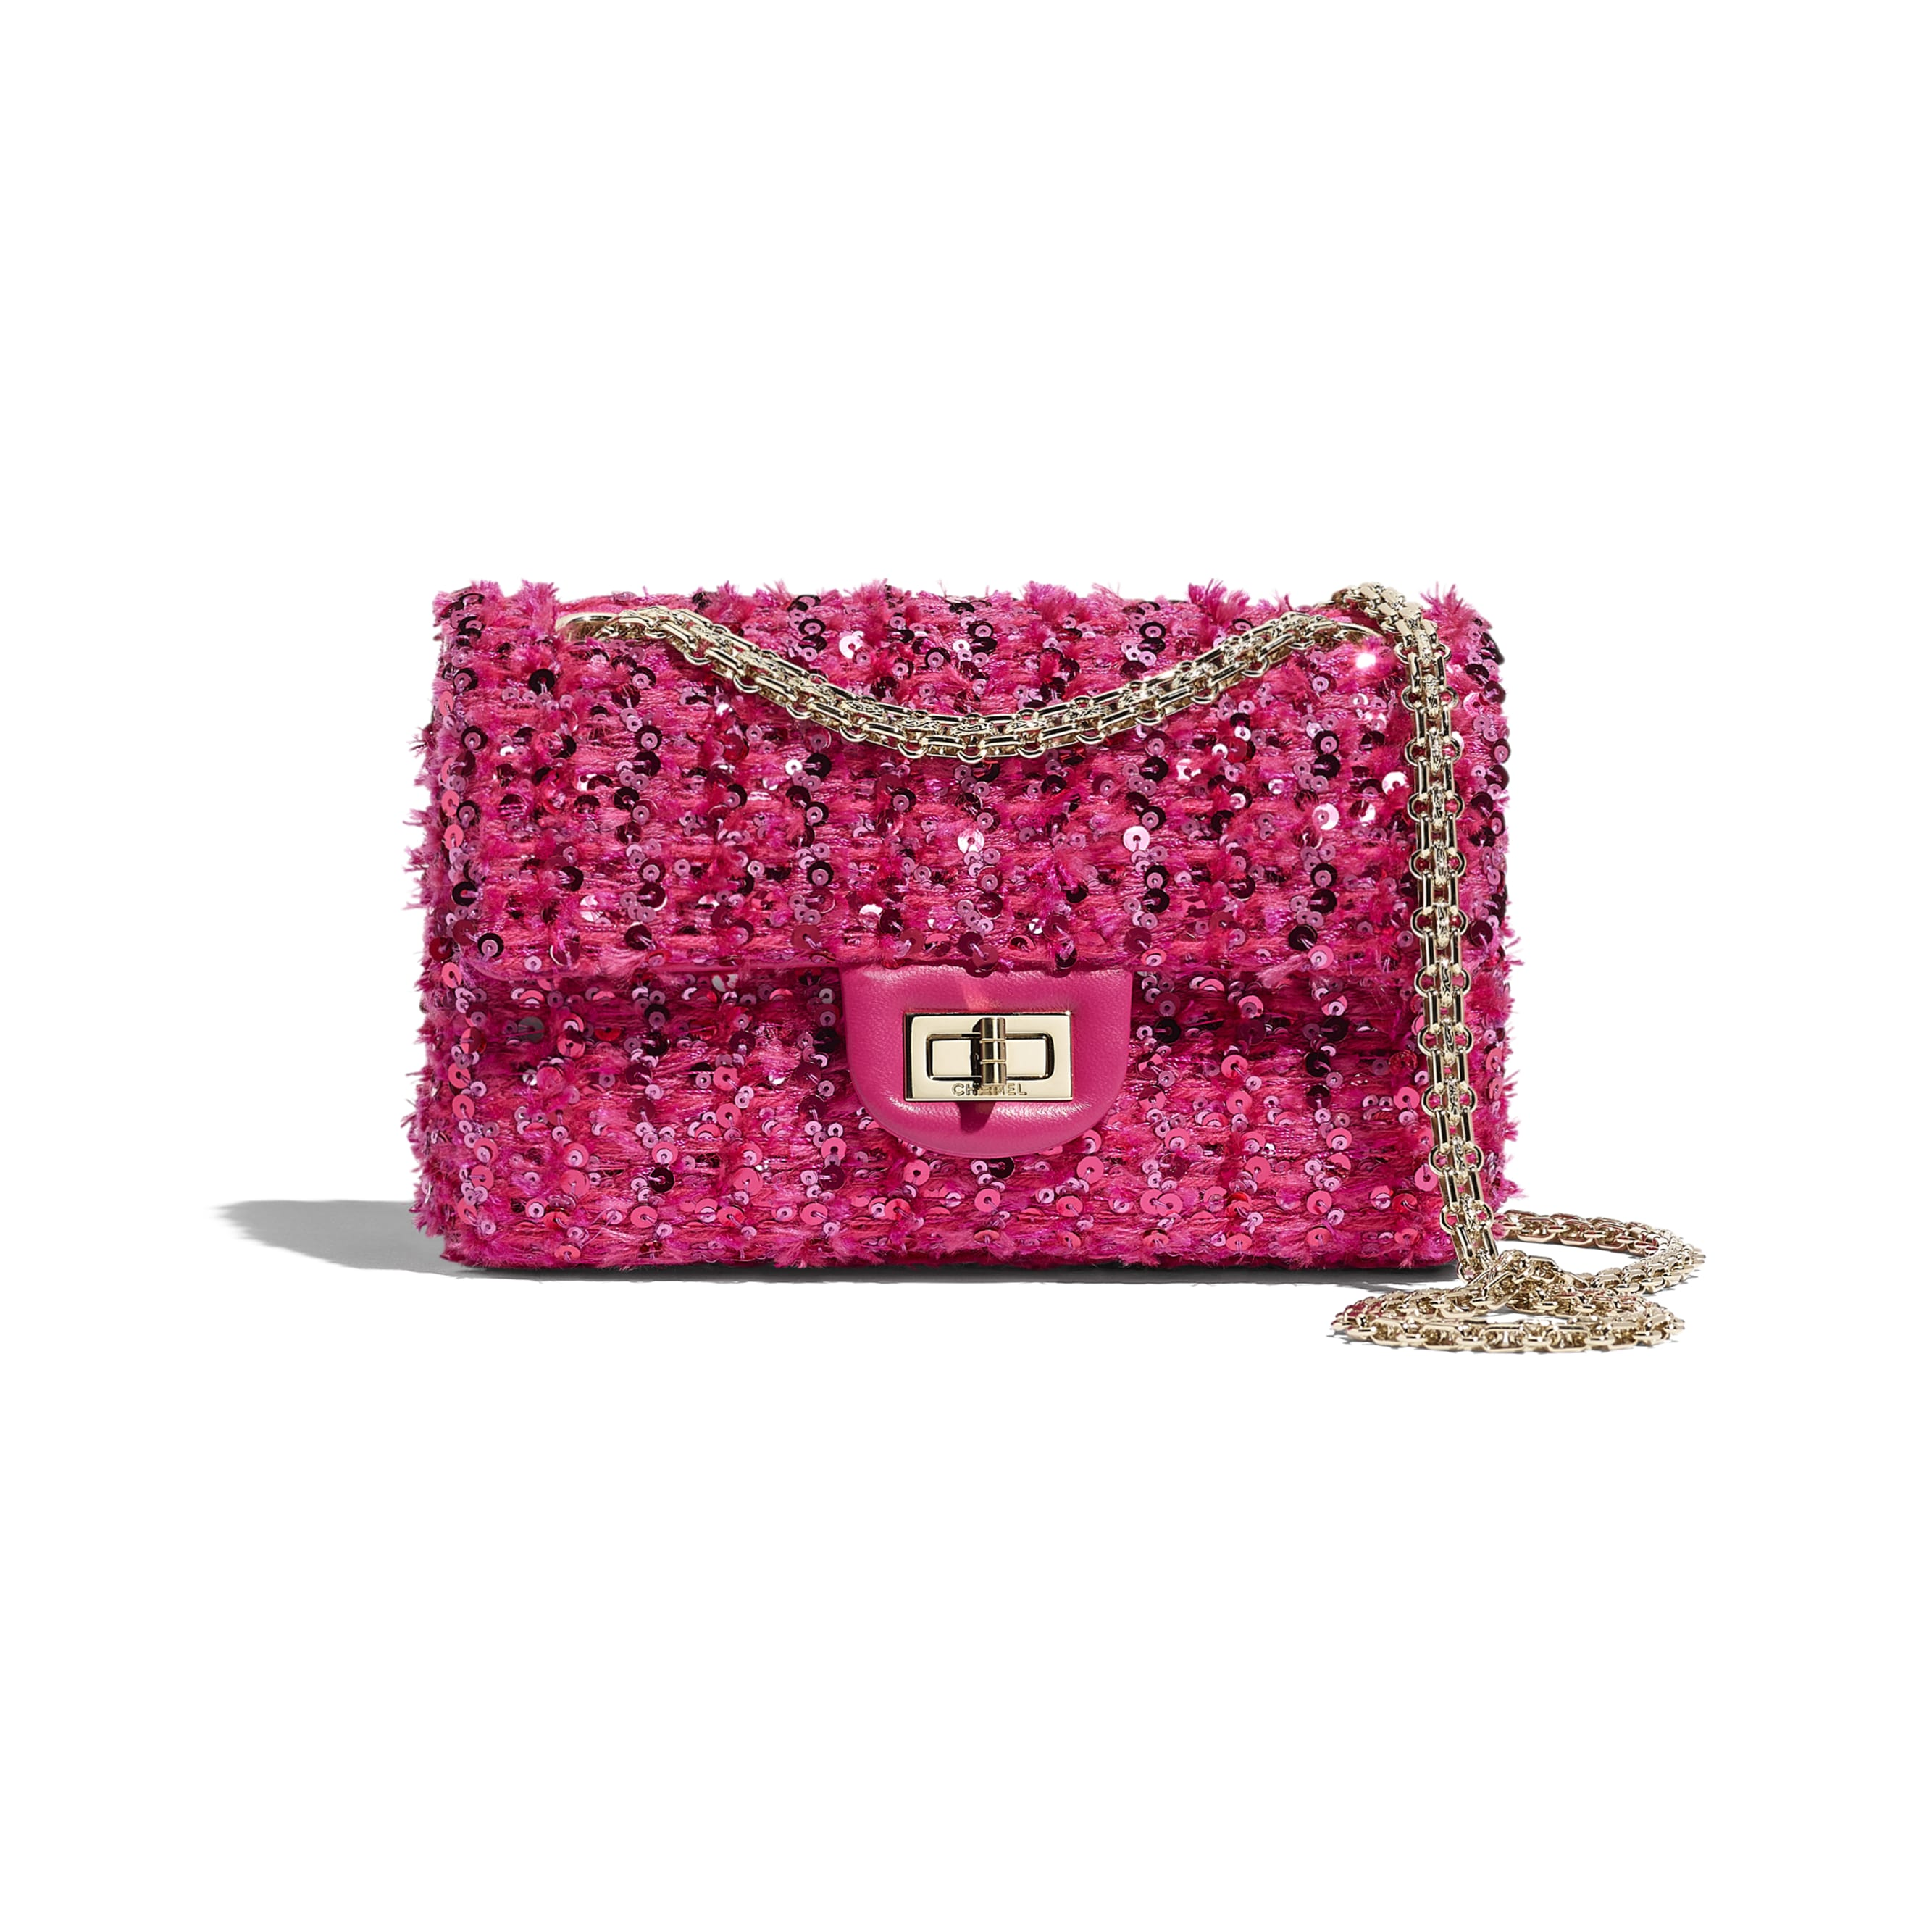 Mini 2.55 Handbag - Pink - Sequins & Gold-Tone Metal - CHANEL - Default view - see standard sized version